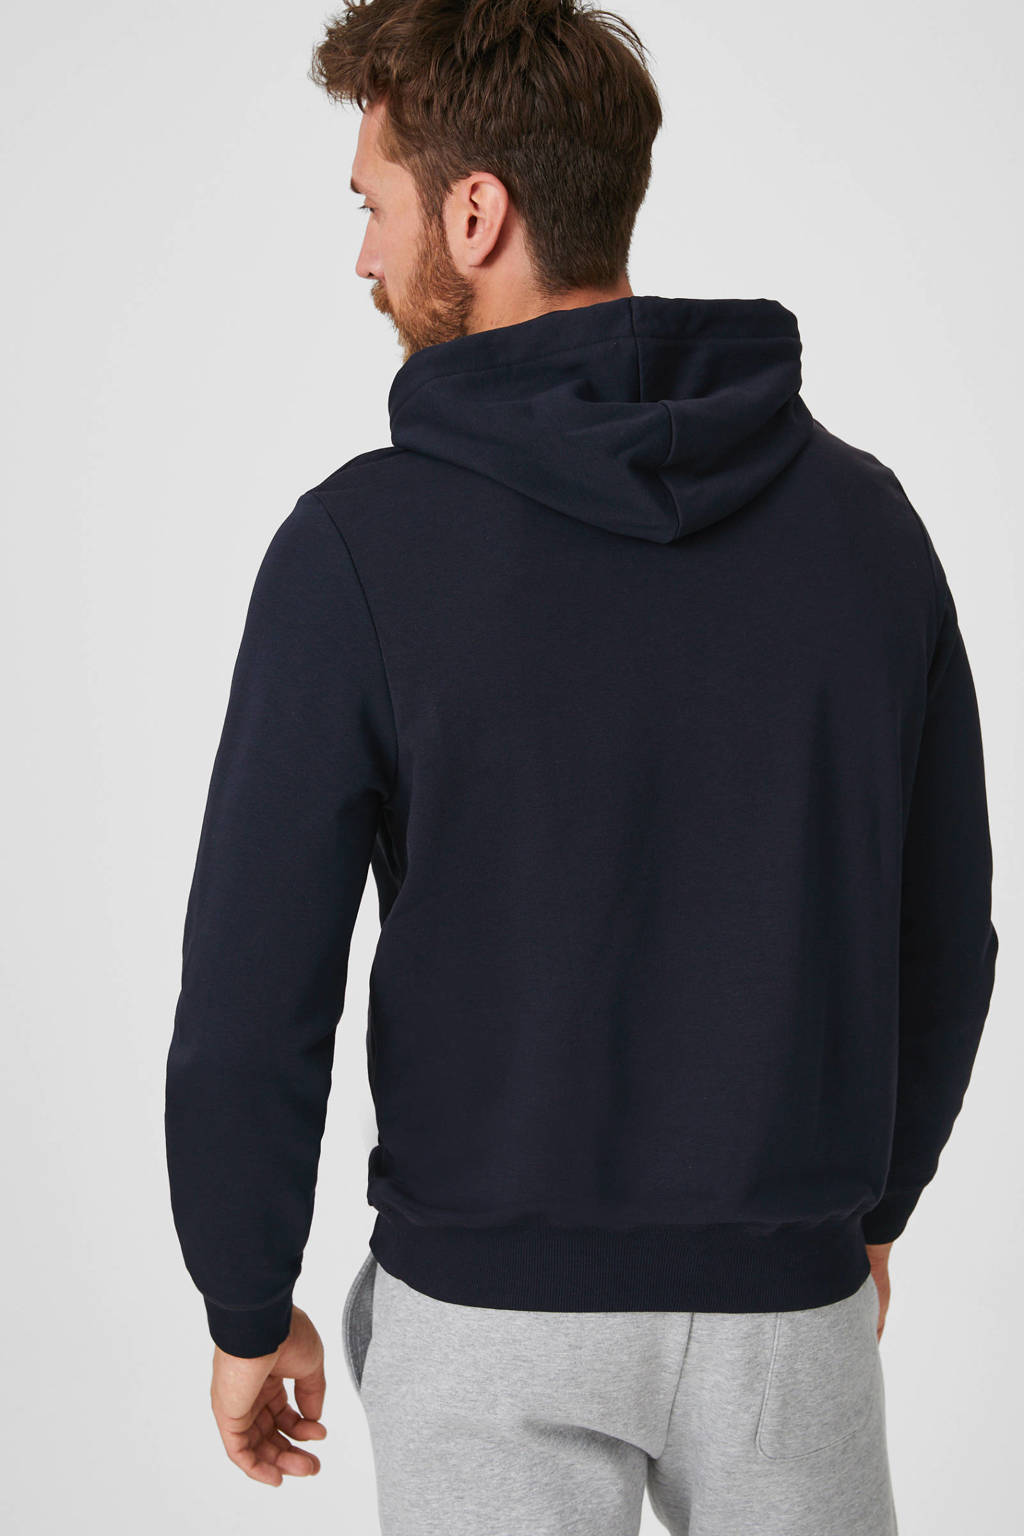 C&A Angelo Litrico hoodie donkerblauw, Donkerblauw